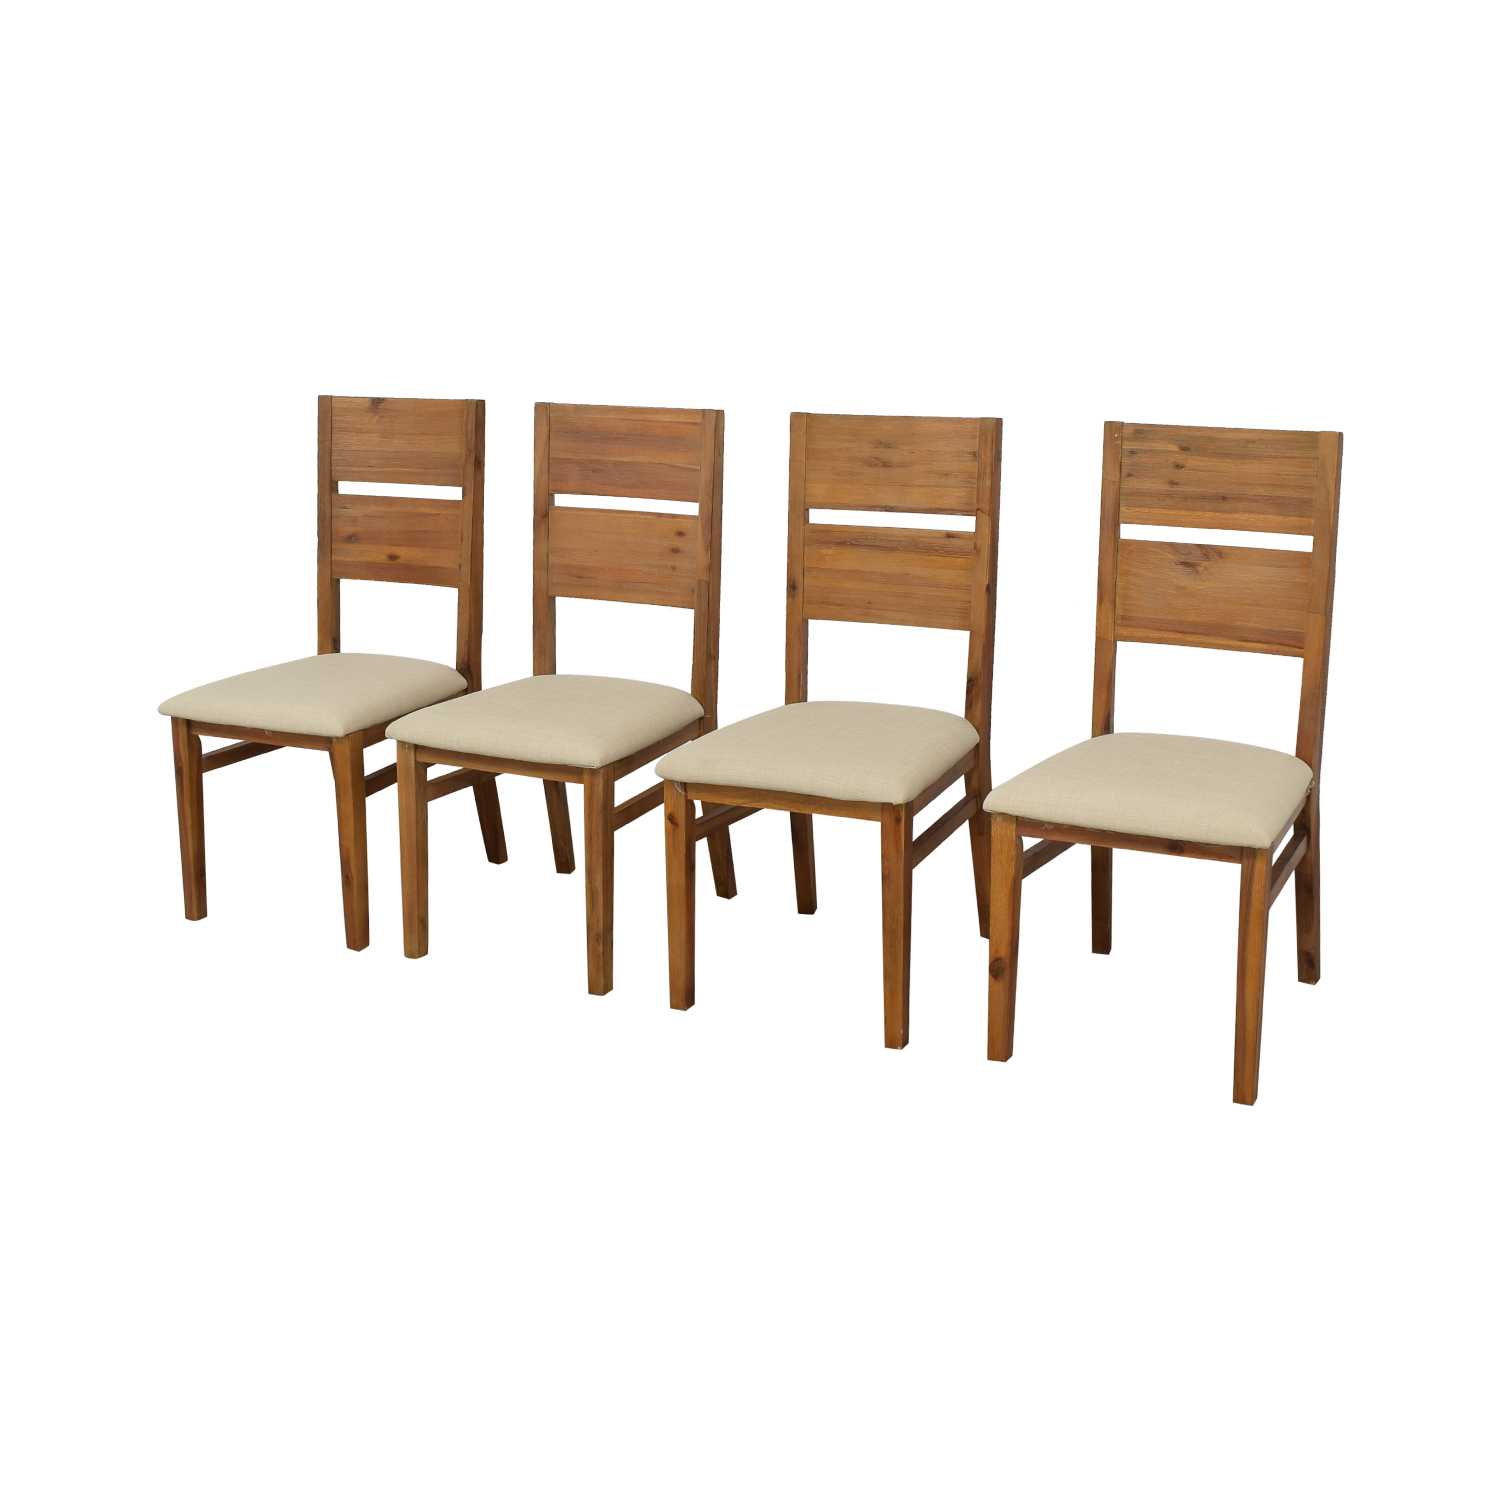 Macy's Macy's Dining Chairs brown & beige